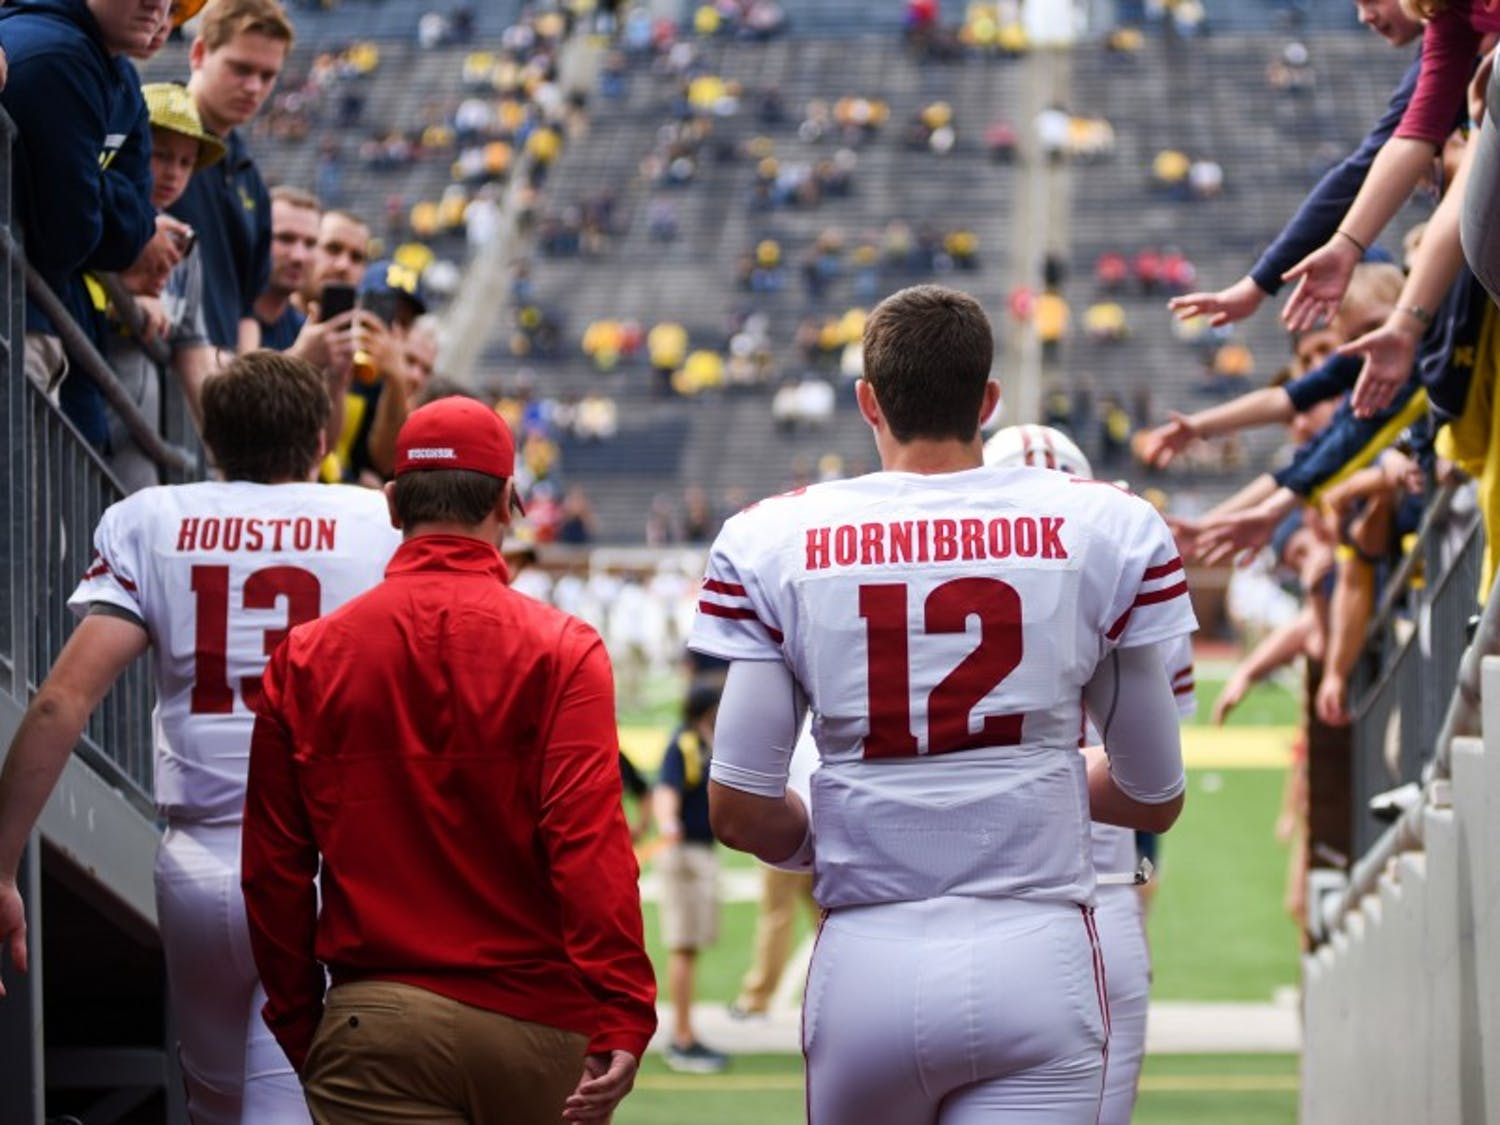 Quarterback Alex Hornibrook was inconsistent in his three years as a starter, but he reached heights few Wisconsin signal callers have achieved.